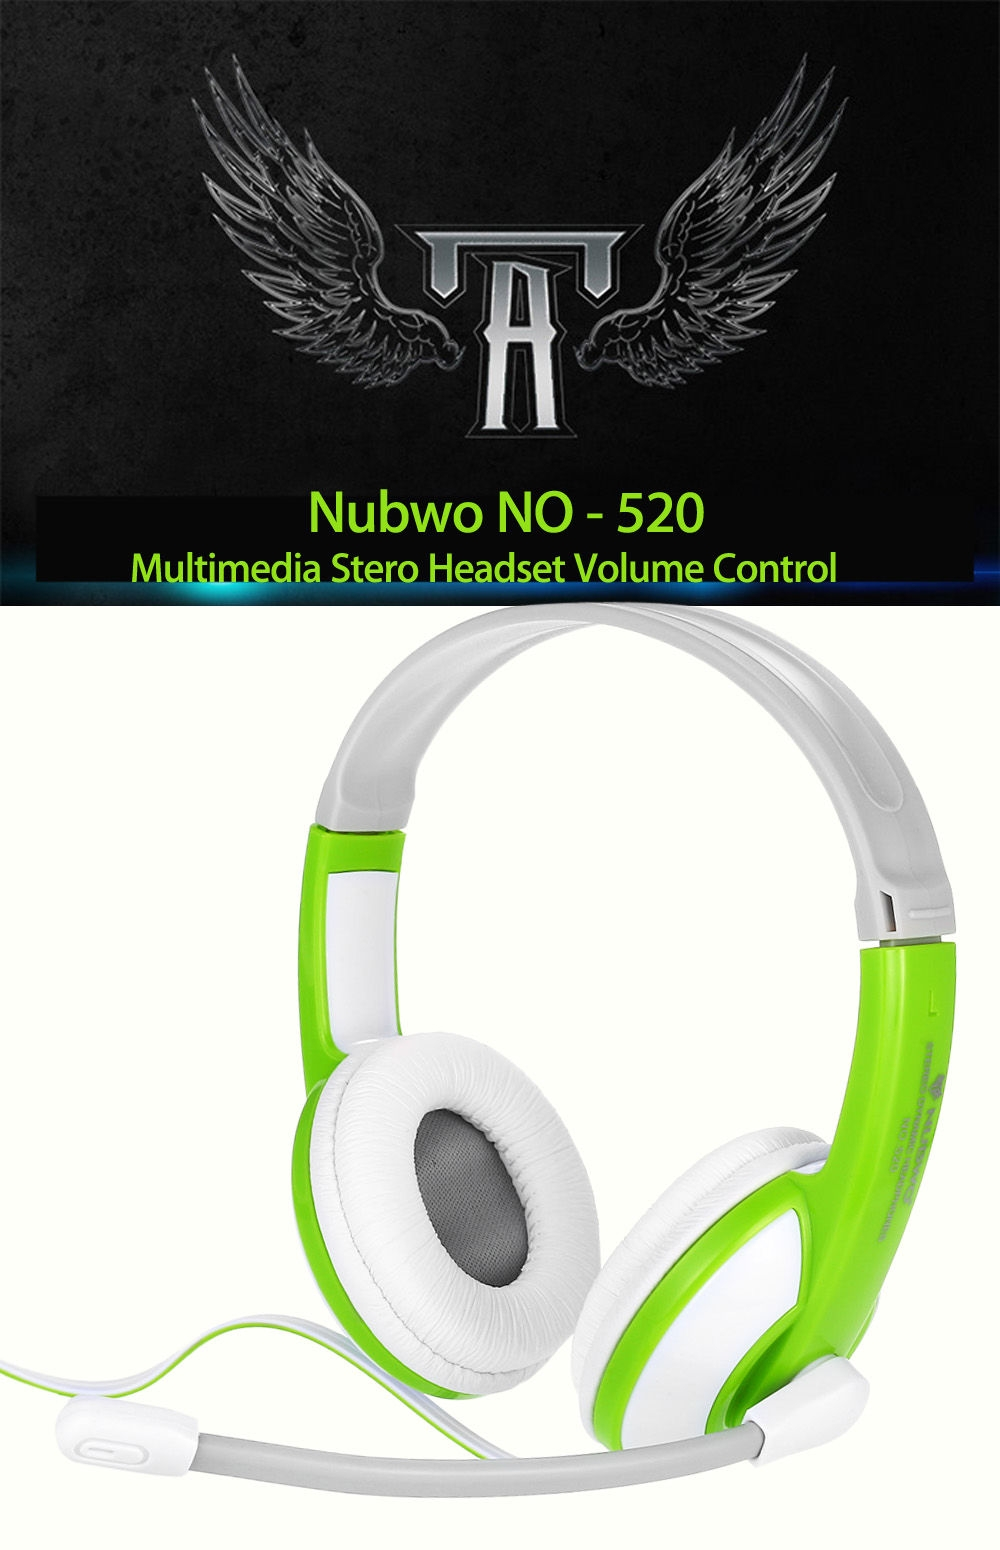 Nubwo NO - 520 Multimedia Stero Headset Wired Headphone with Adjustable Microphone Arm Volume Control